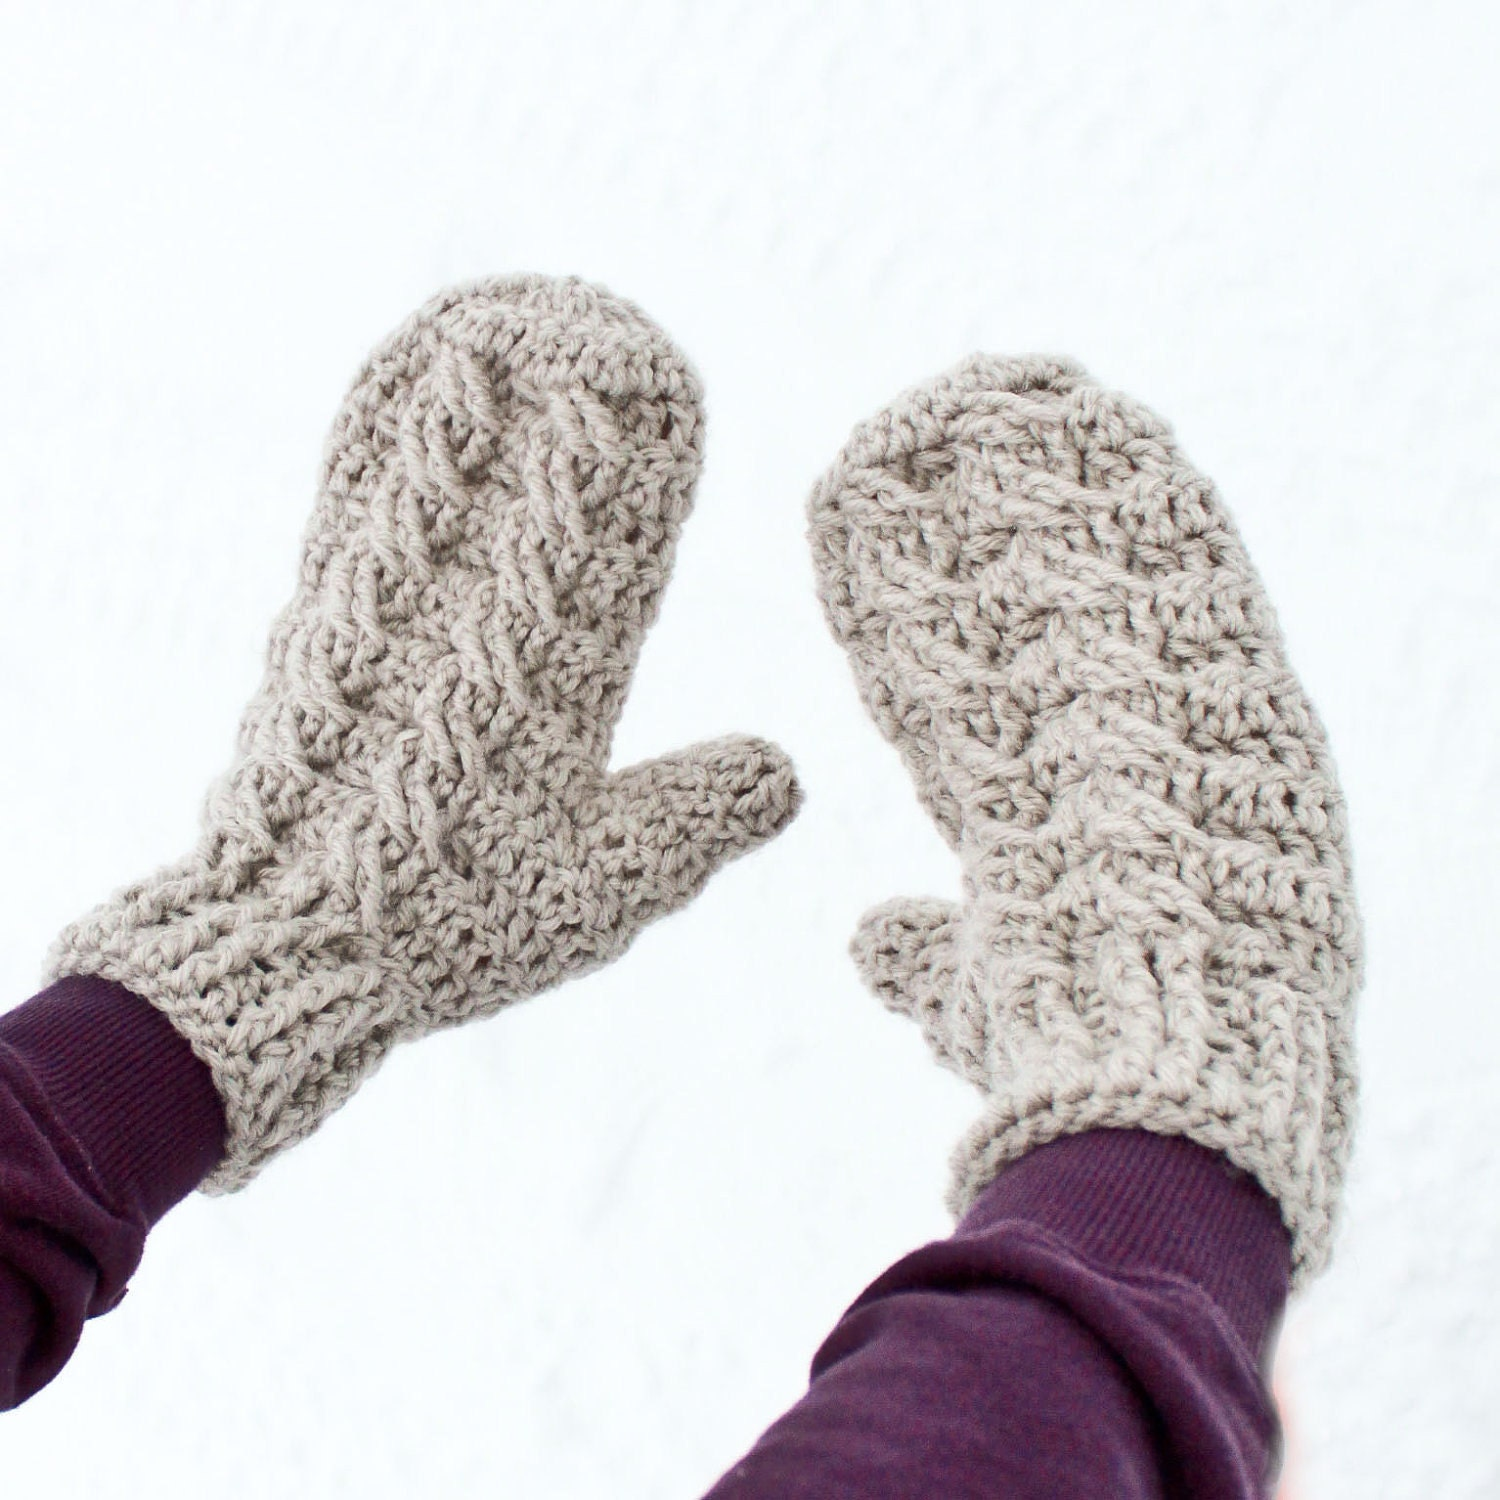 Crochet Gloves : Instant Download Crochet Pattern Cable Mittens and by Mamachee